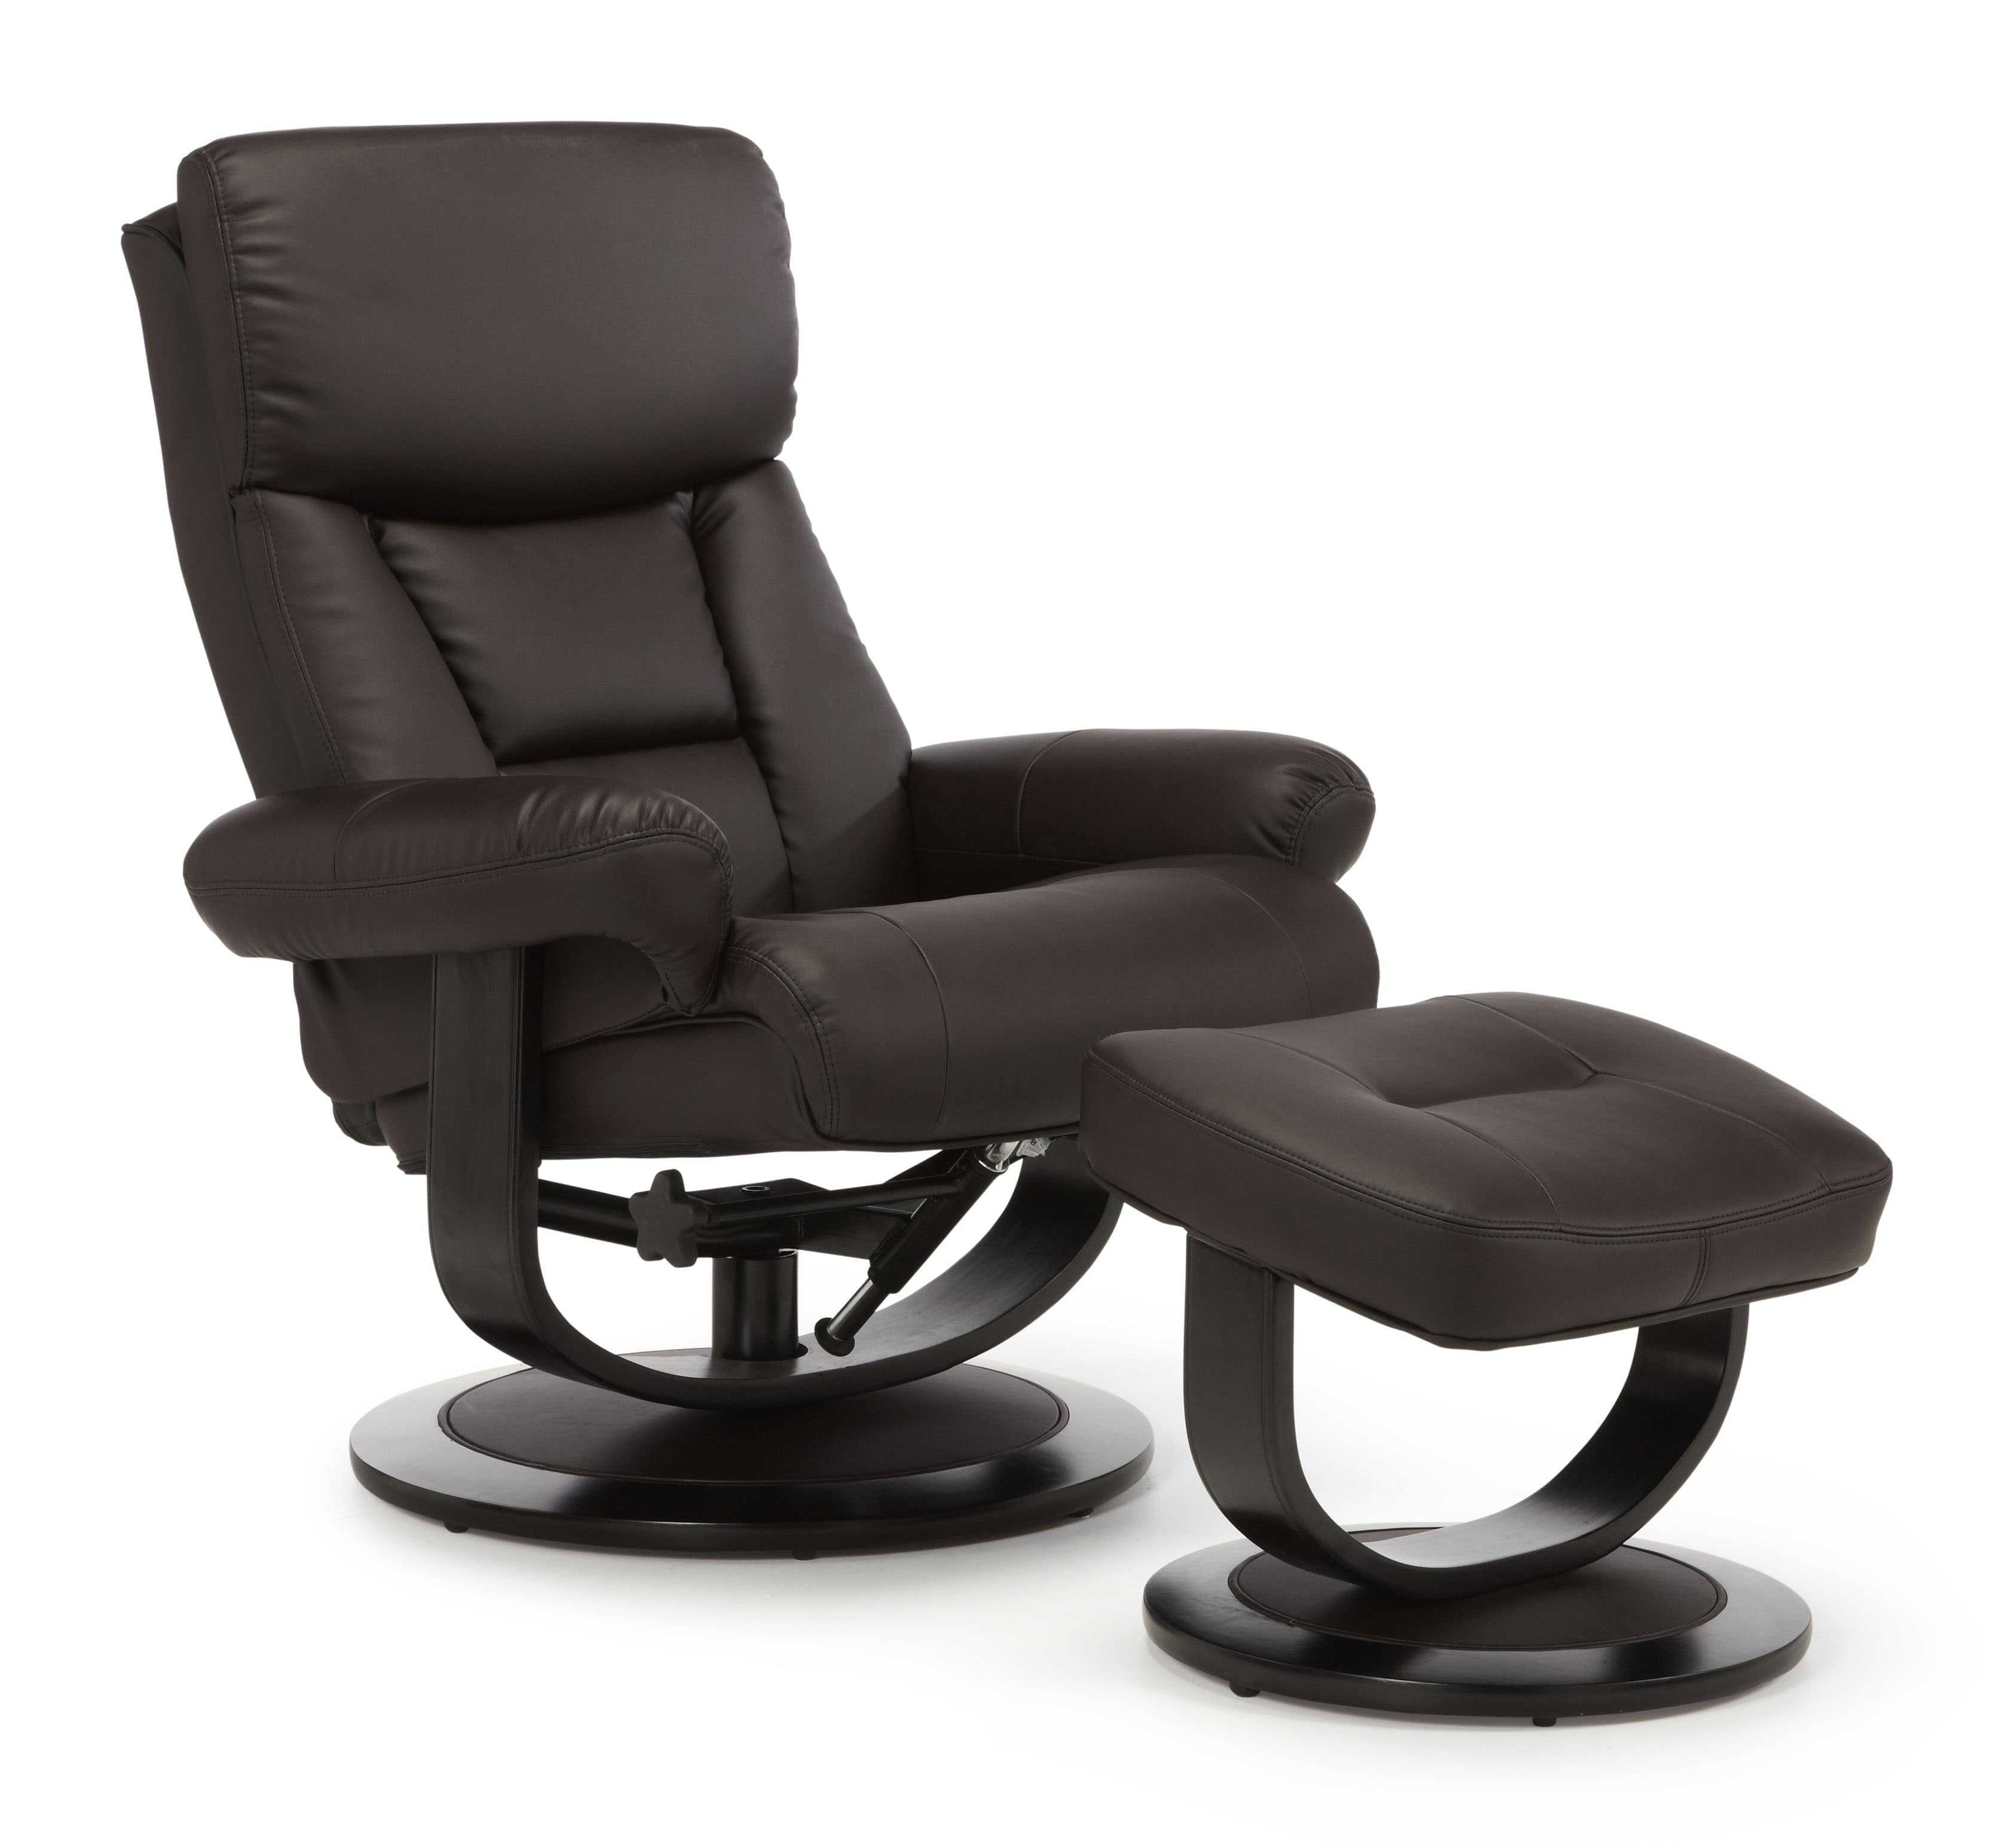 Risor Brown Recliner